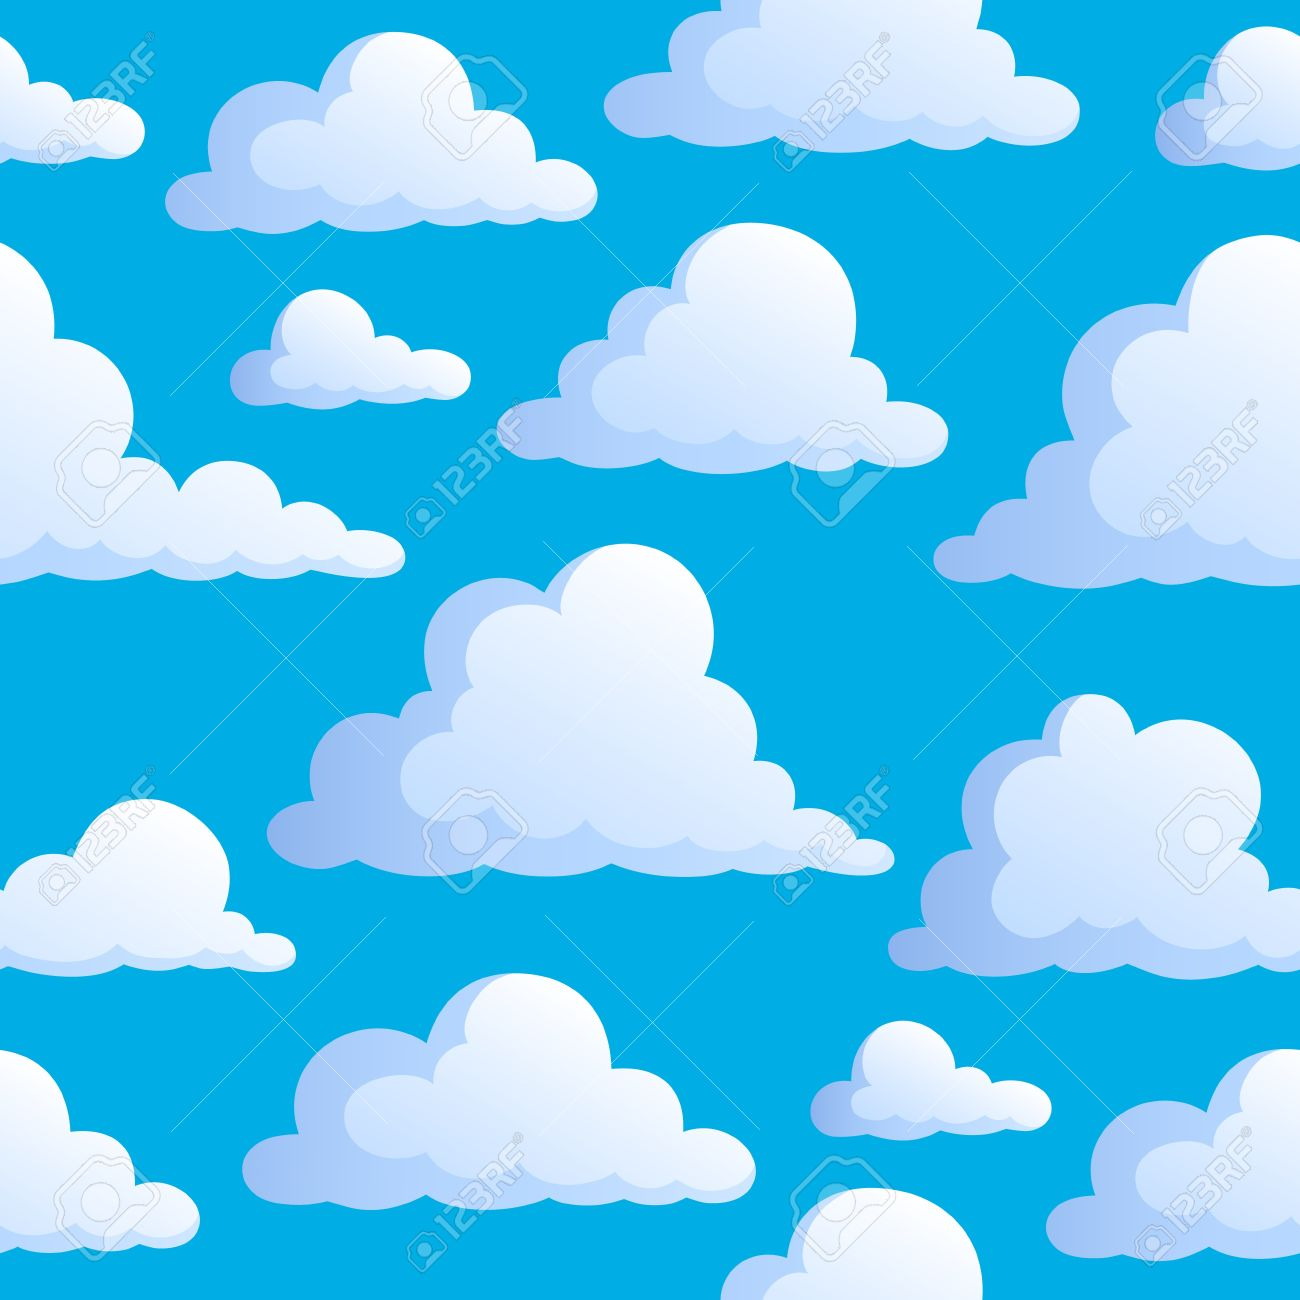 Cloudy day clipart 6 » Clipart Station.